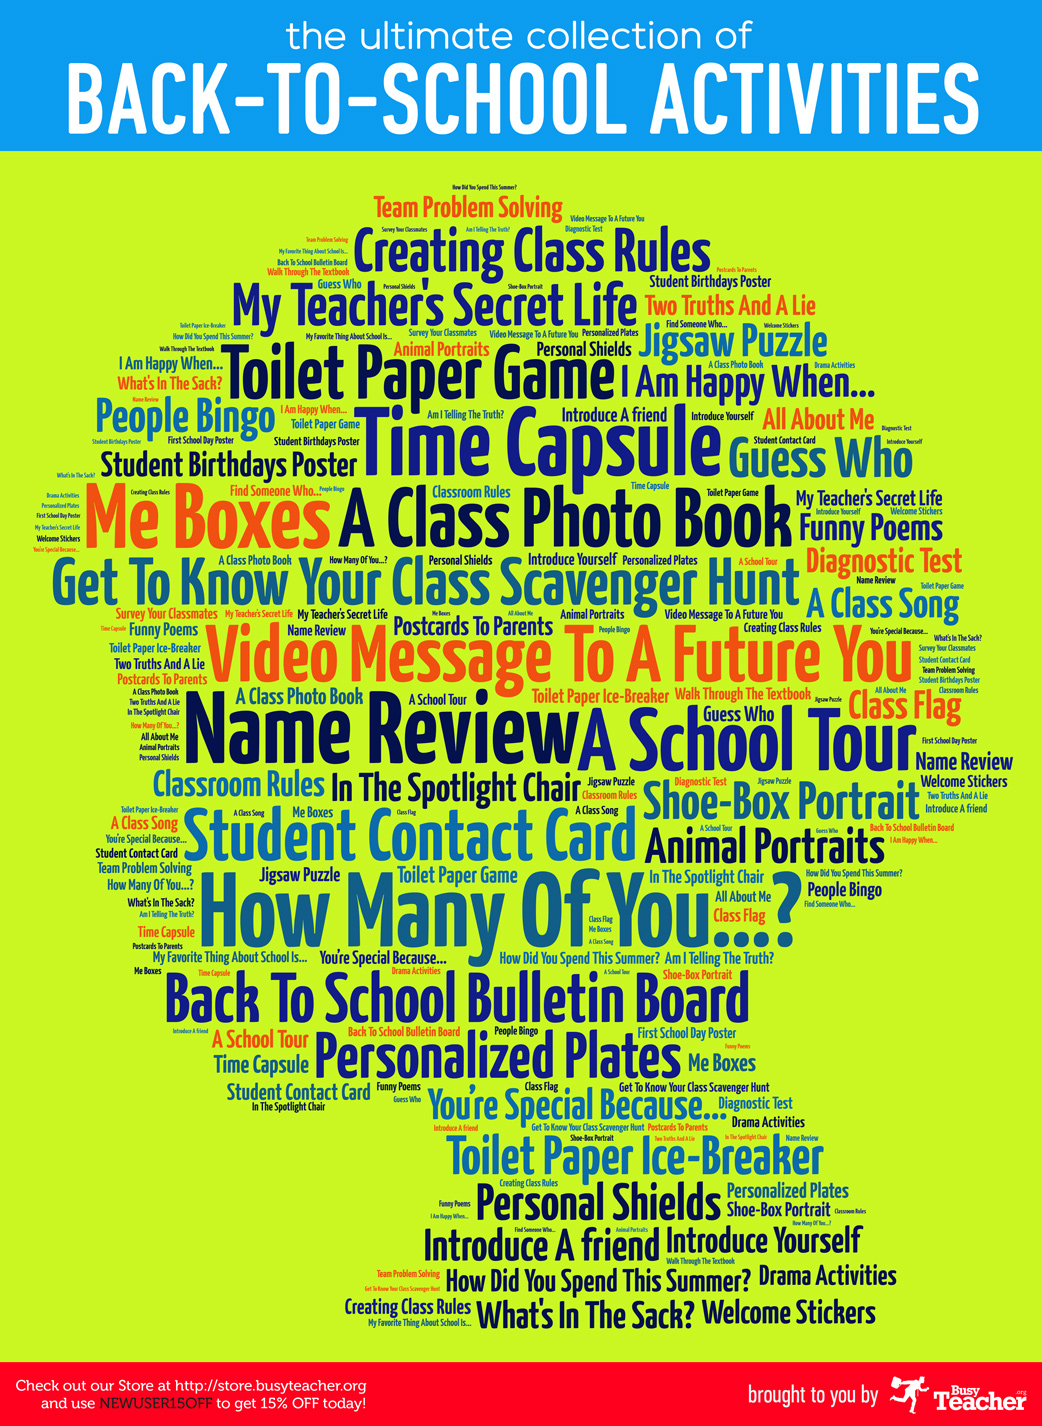 The Ultimate Collection of Back to School Activities [POSTER]